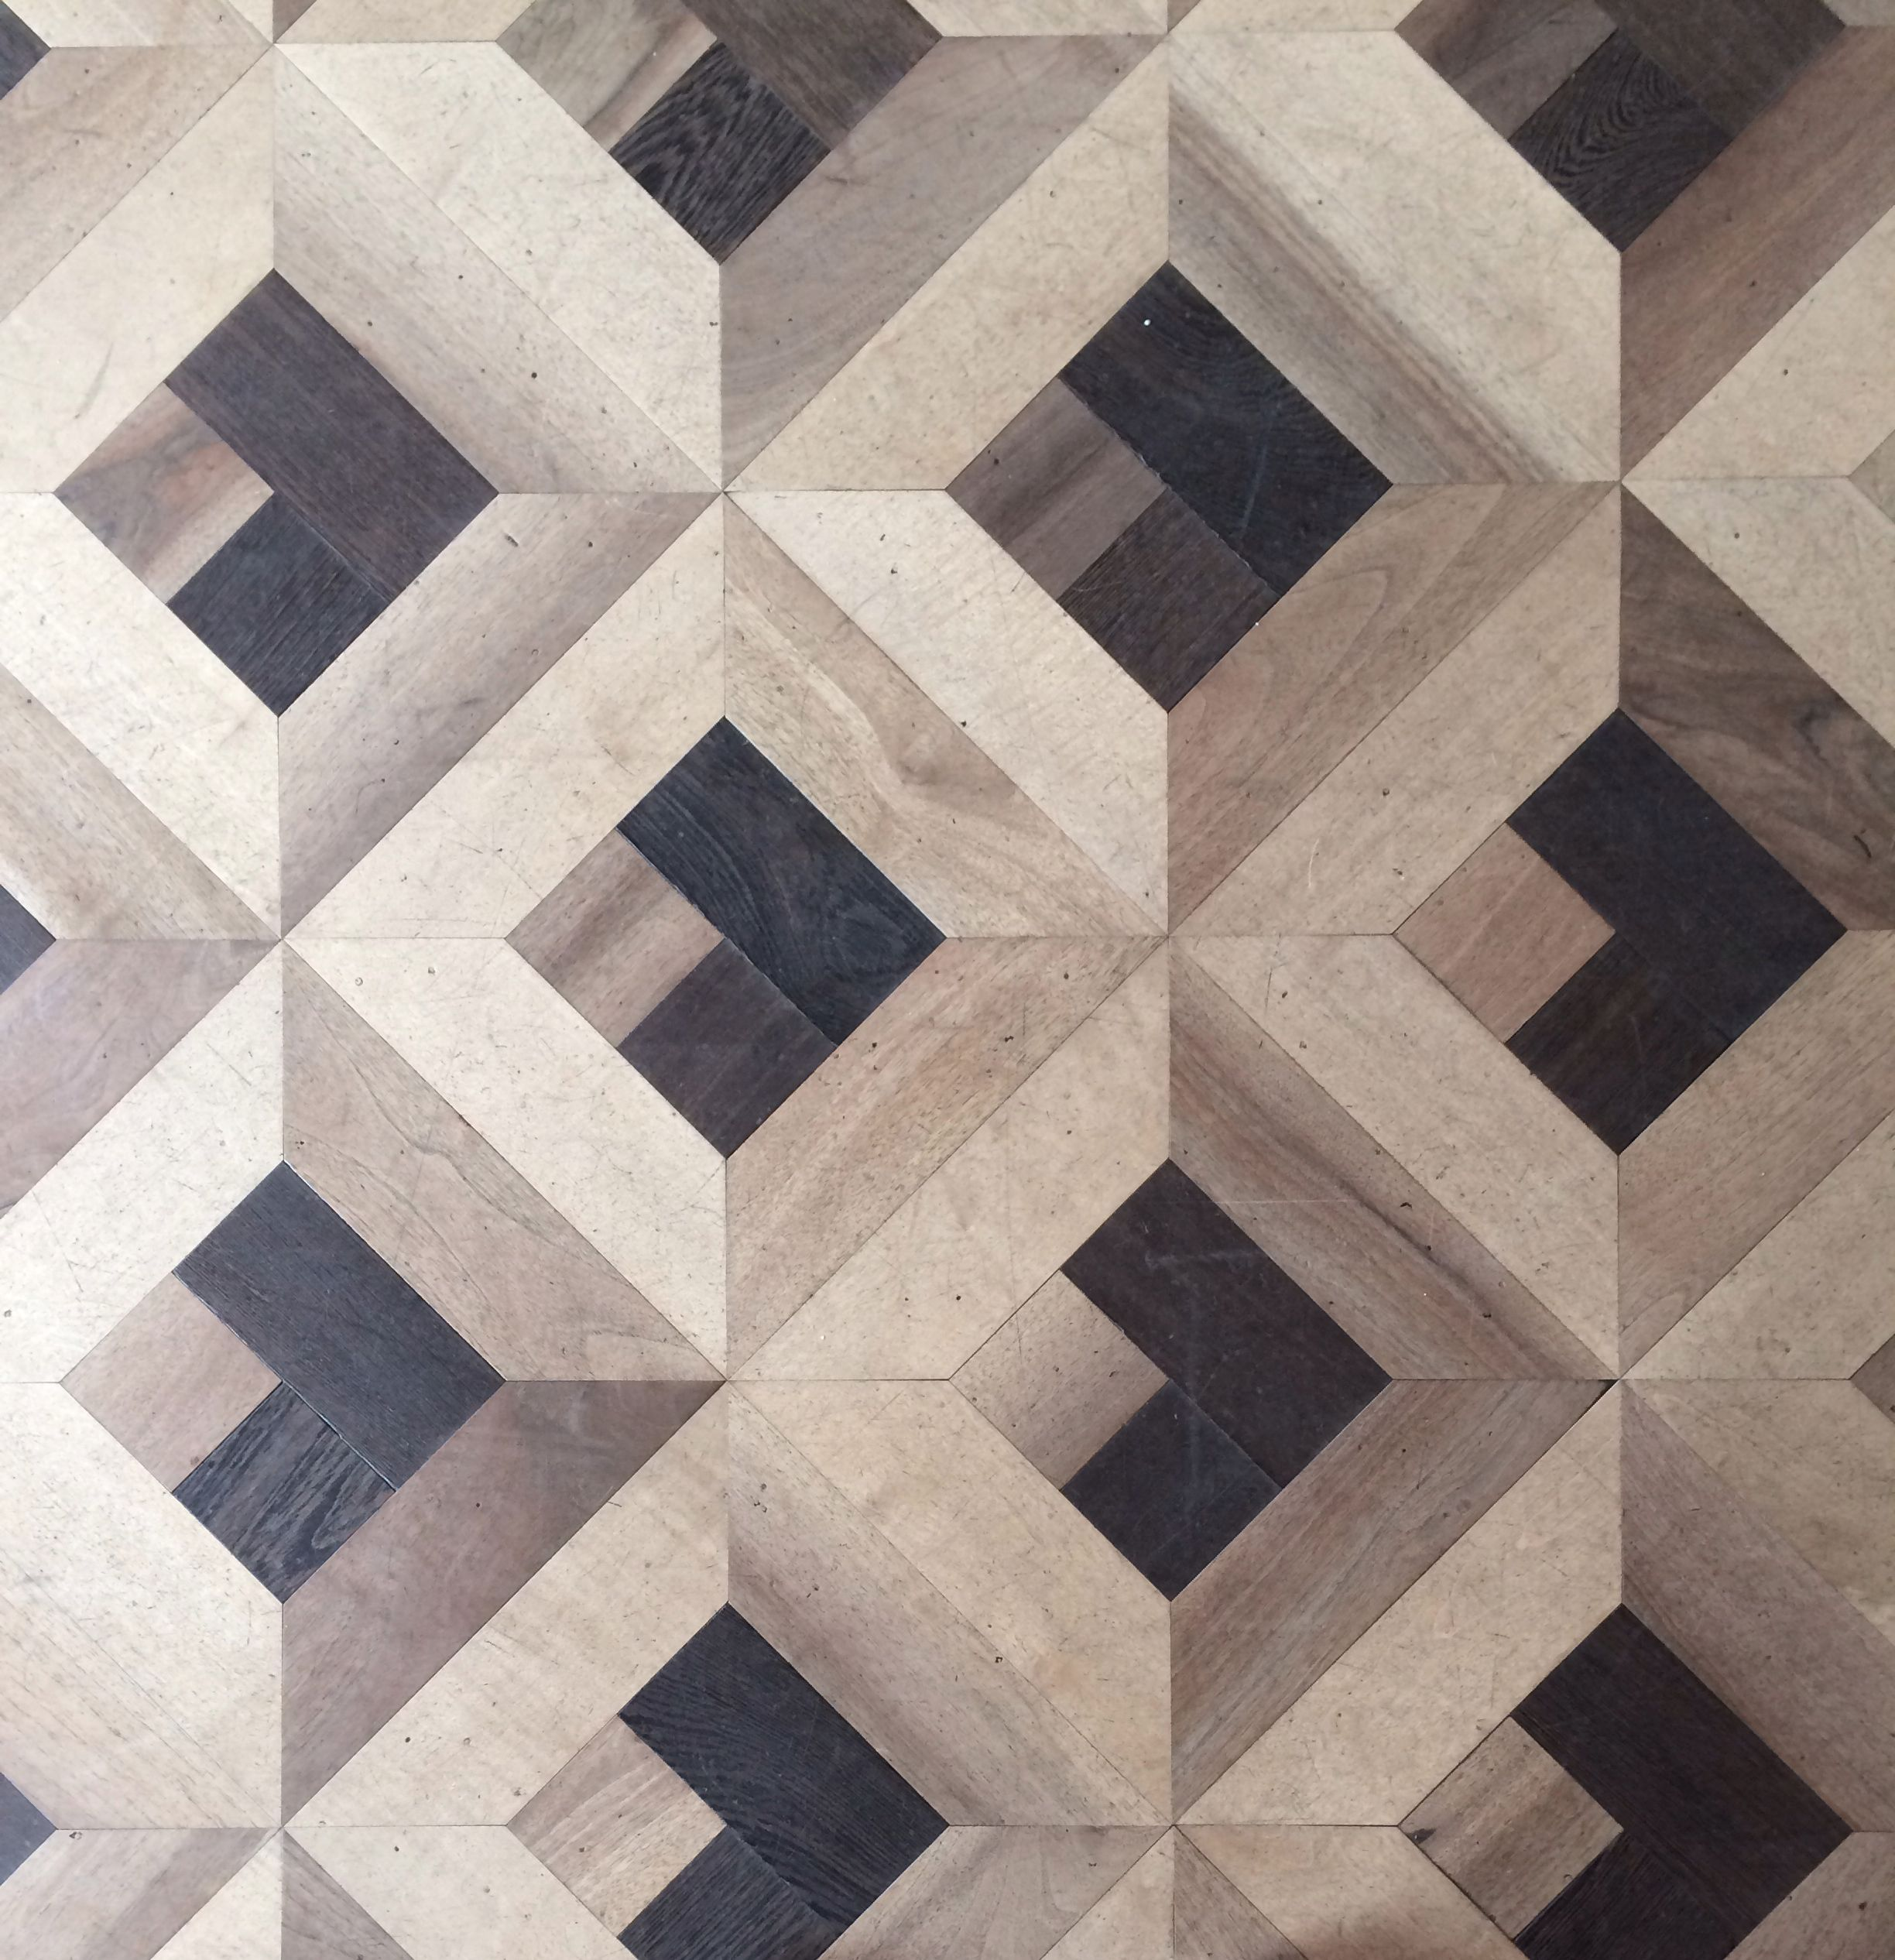 Reminds me of the building facade tile pattern pinterest timber floors at the grand hotel tremezzo the different tones of timber and the way the parquet is laid creates a dramatic effect dailygadgetfo Gallery